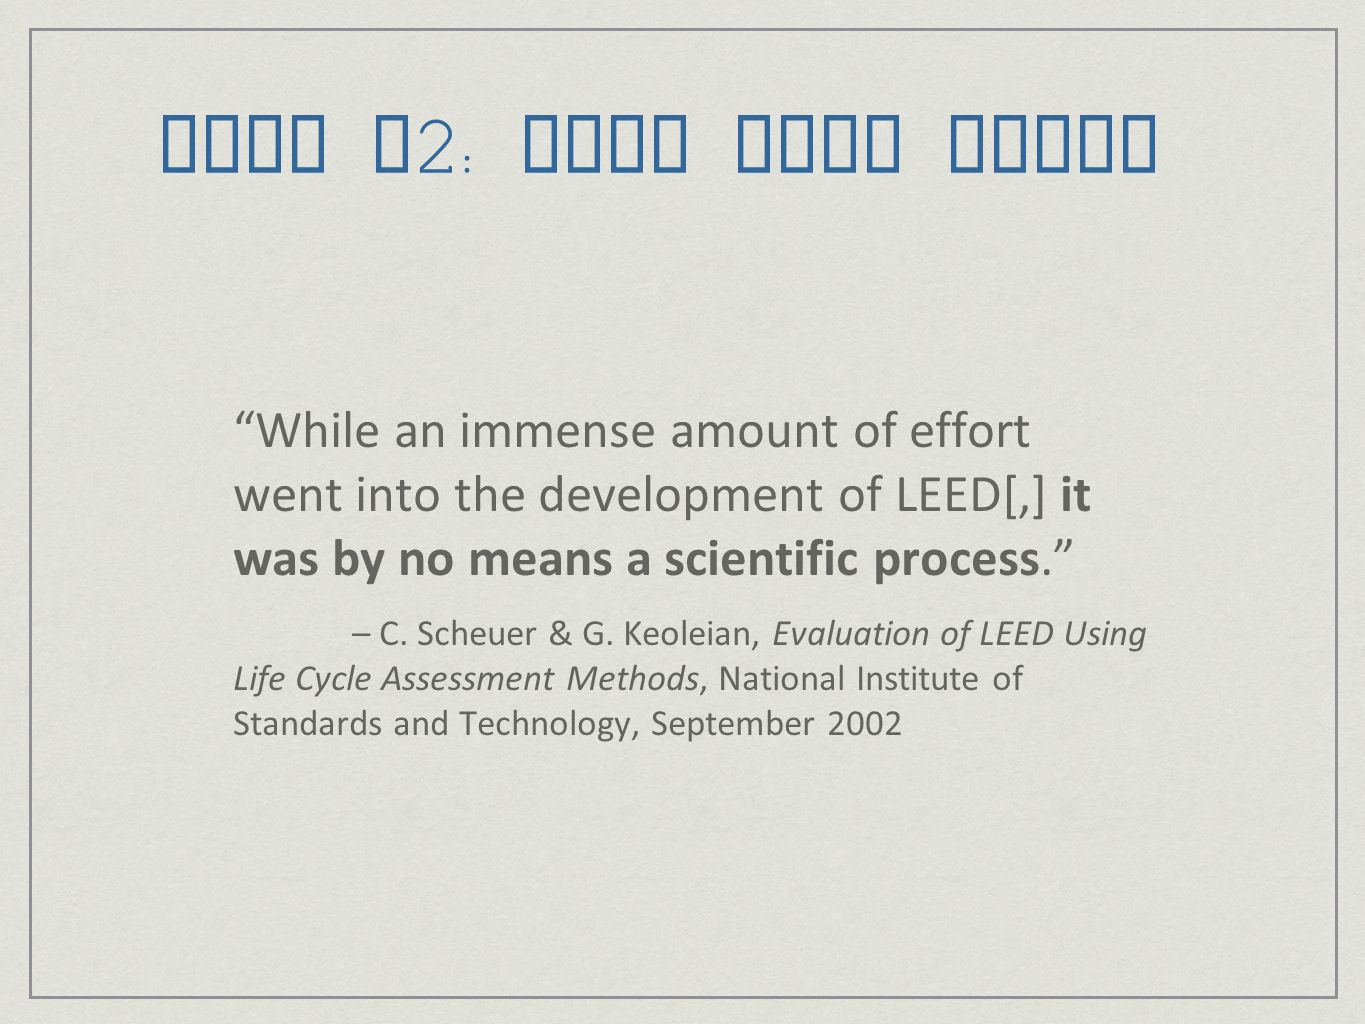 LEED v2: What Went Wrong While an immense amount of effort went into the development of LEED[,] it was by no means a scientific process.